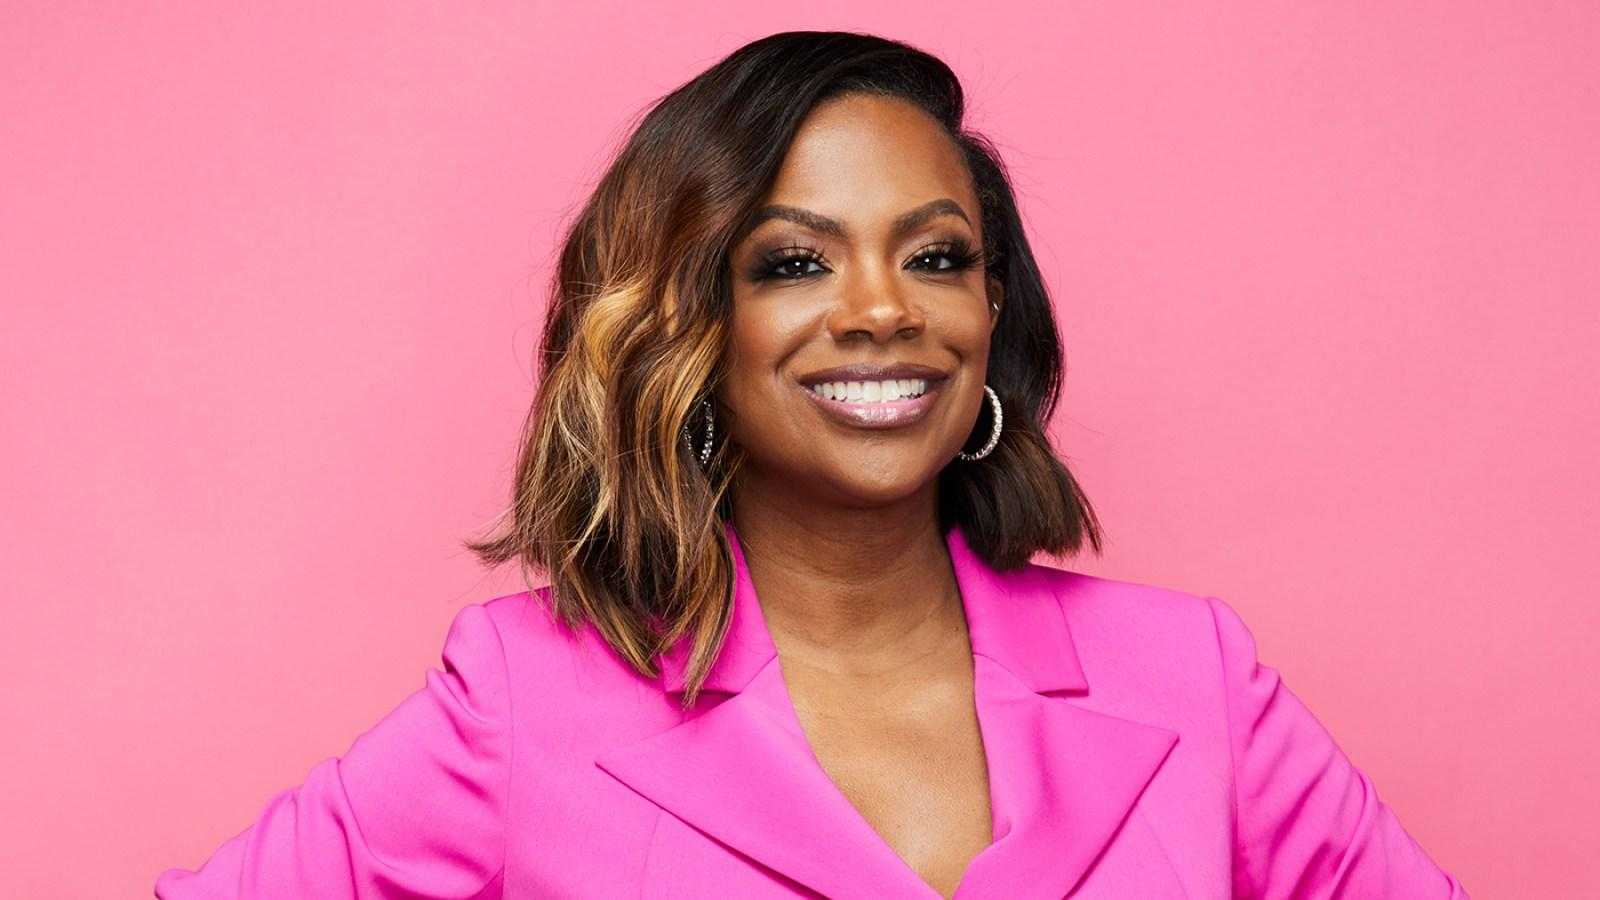 Kandi Burruss Opens Up About Telling Her 4-Year-Old Son About Police Brutality